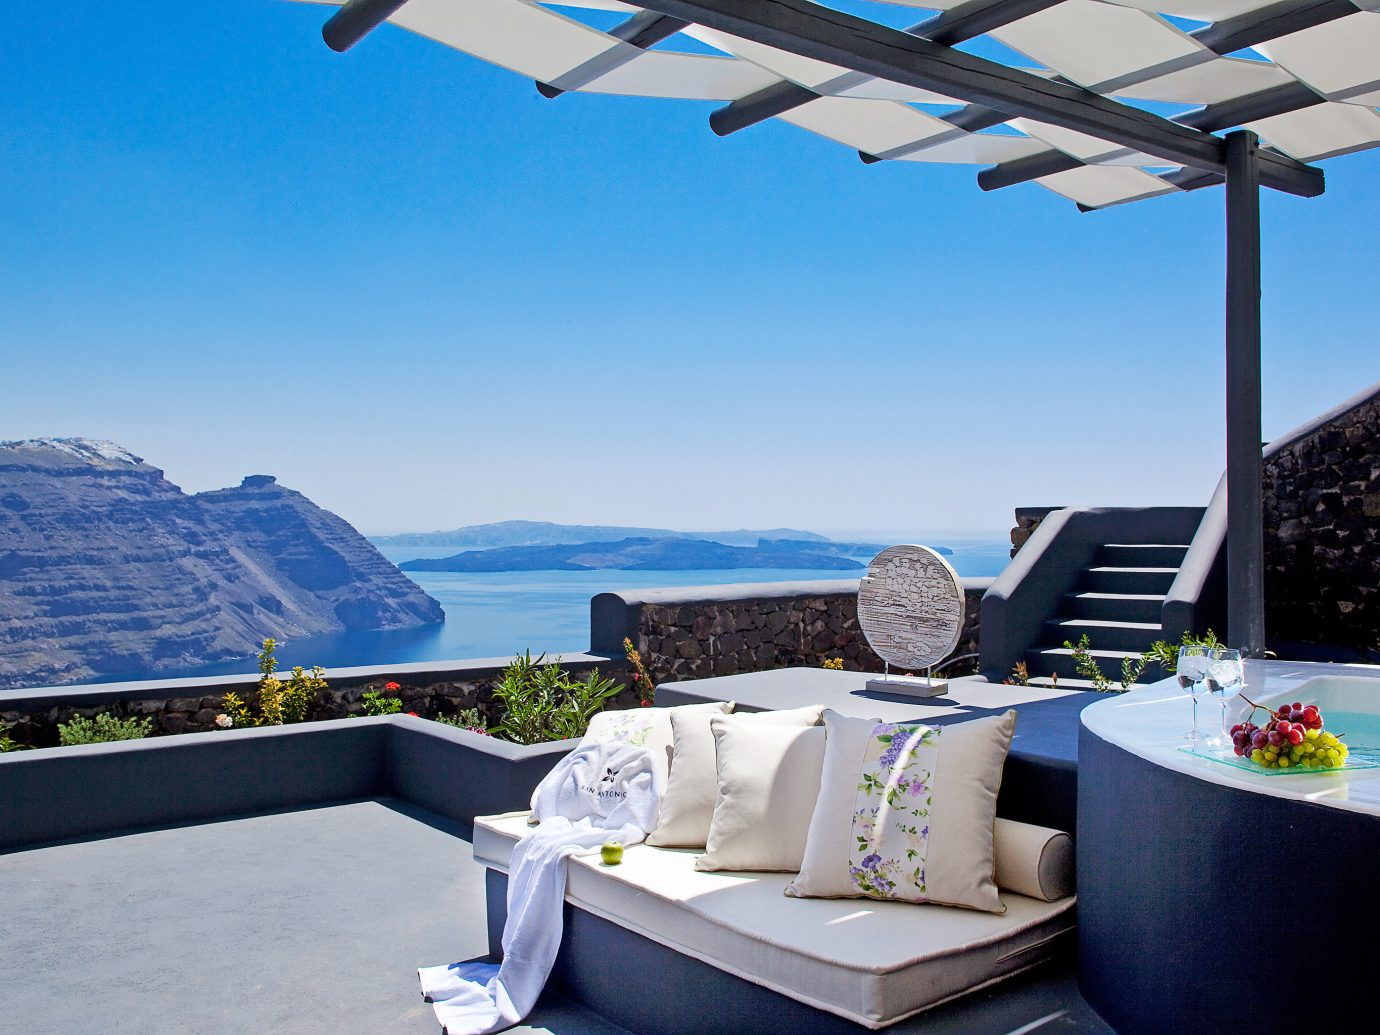 Beachfront Greece Hotels Living Lounge Luxury Santorini sky outdoor blue swimming pool property vacation estate Villa vehicle yacht cottage Resort passenger ship apartment